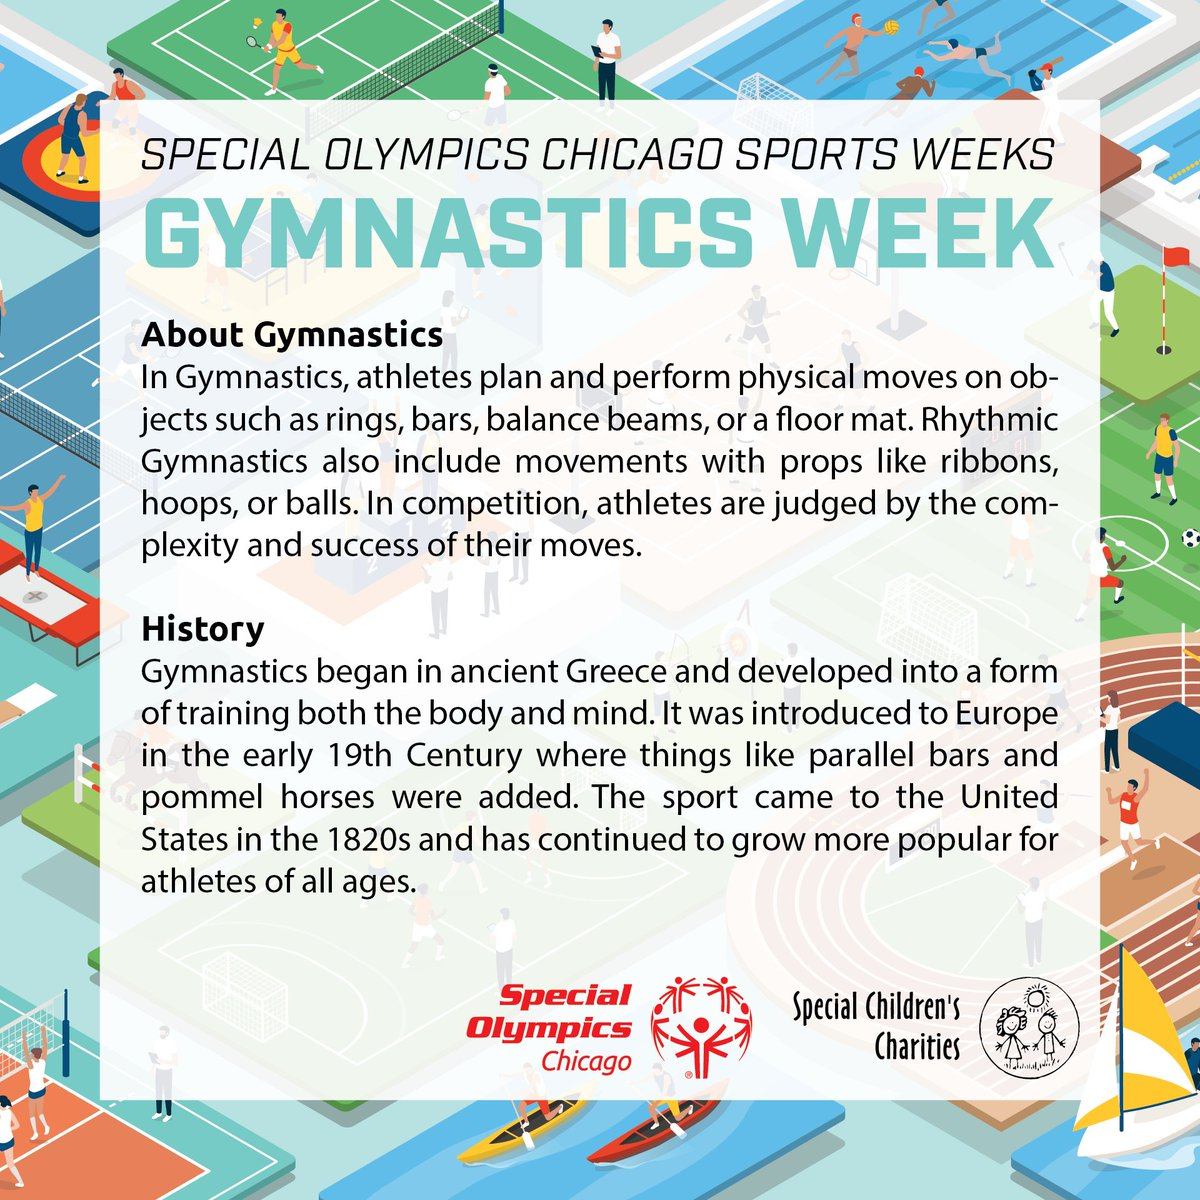 It's Gymnastics Week! Gymnastics began in ancient Greece and has spread around the world, becoming popular for athletes of all ages. Special Olympics Chicago athletes compete in a variety of events, including floor exercises and vaulting. Rhythmic Gymnastics is also popular! https://t.co/UI2wbLTeXR